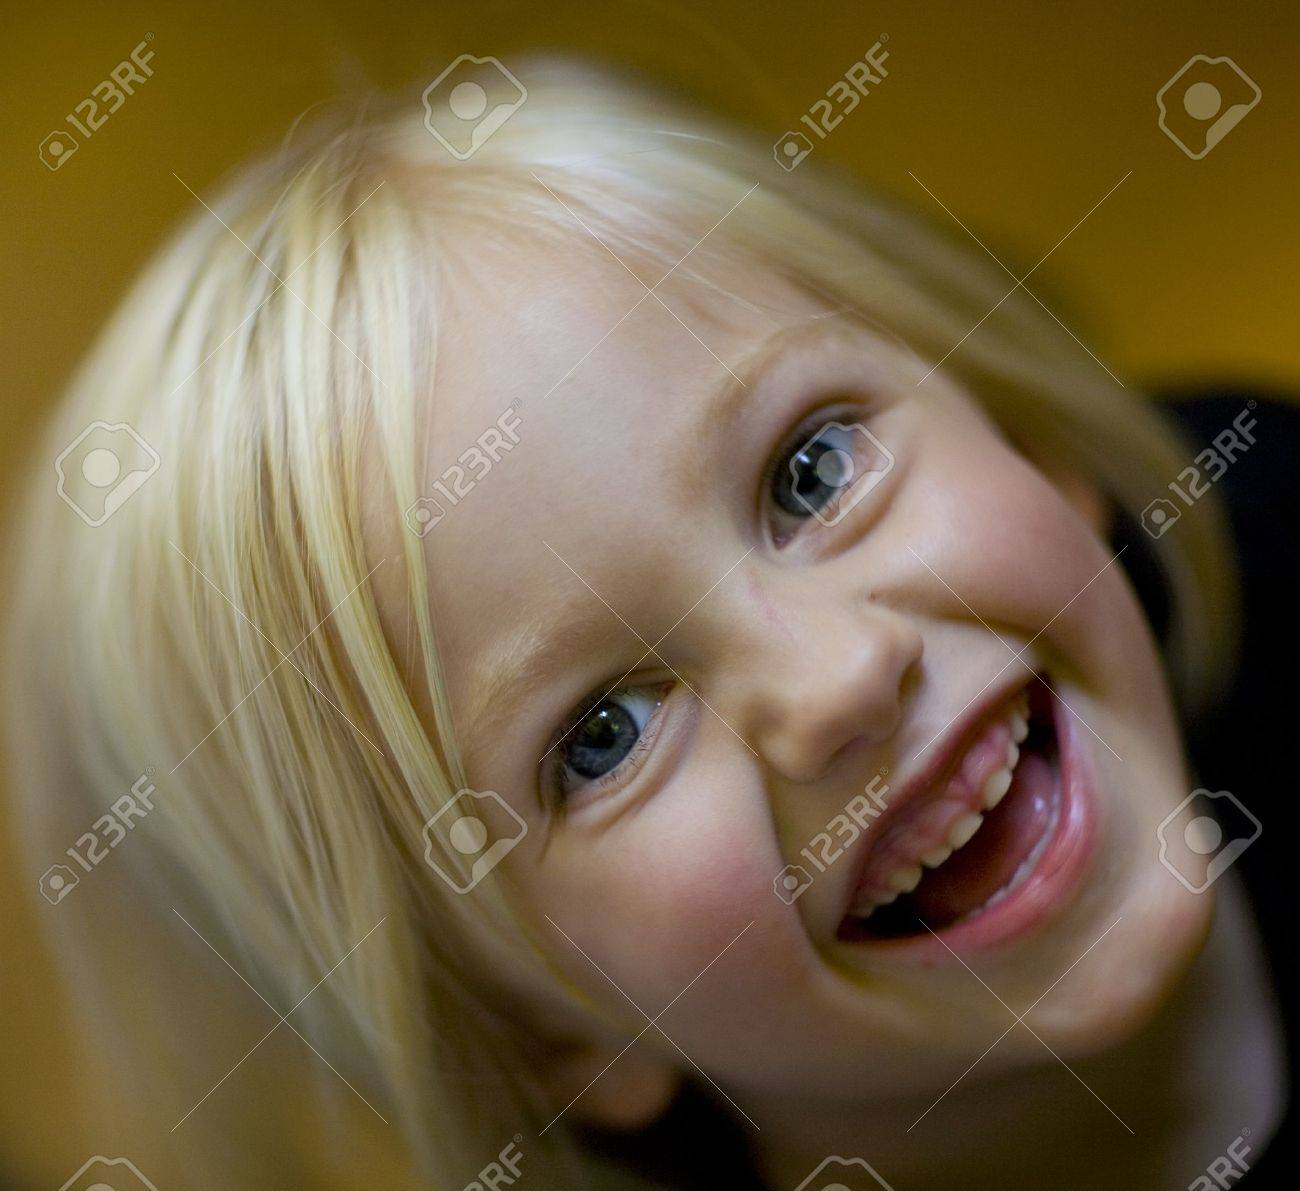 Laughing girl looking up at the camera Stock Photo - 3407728